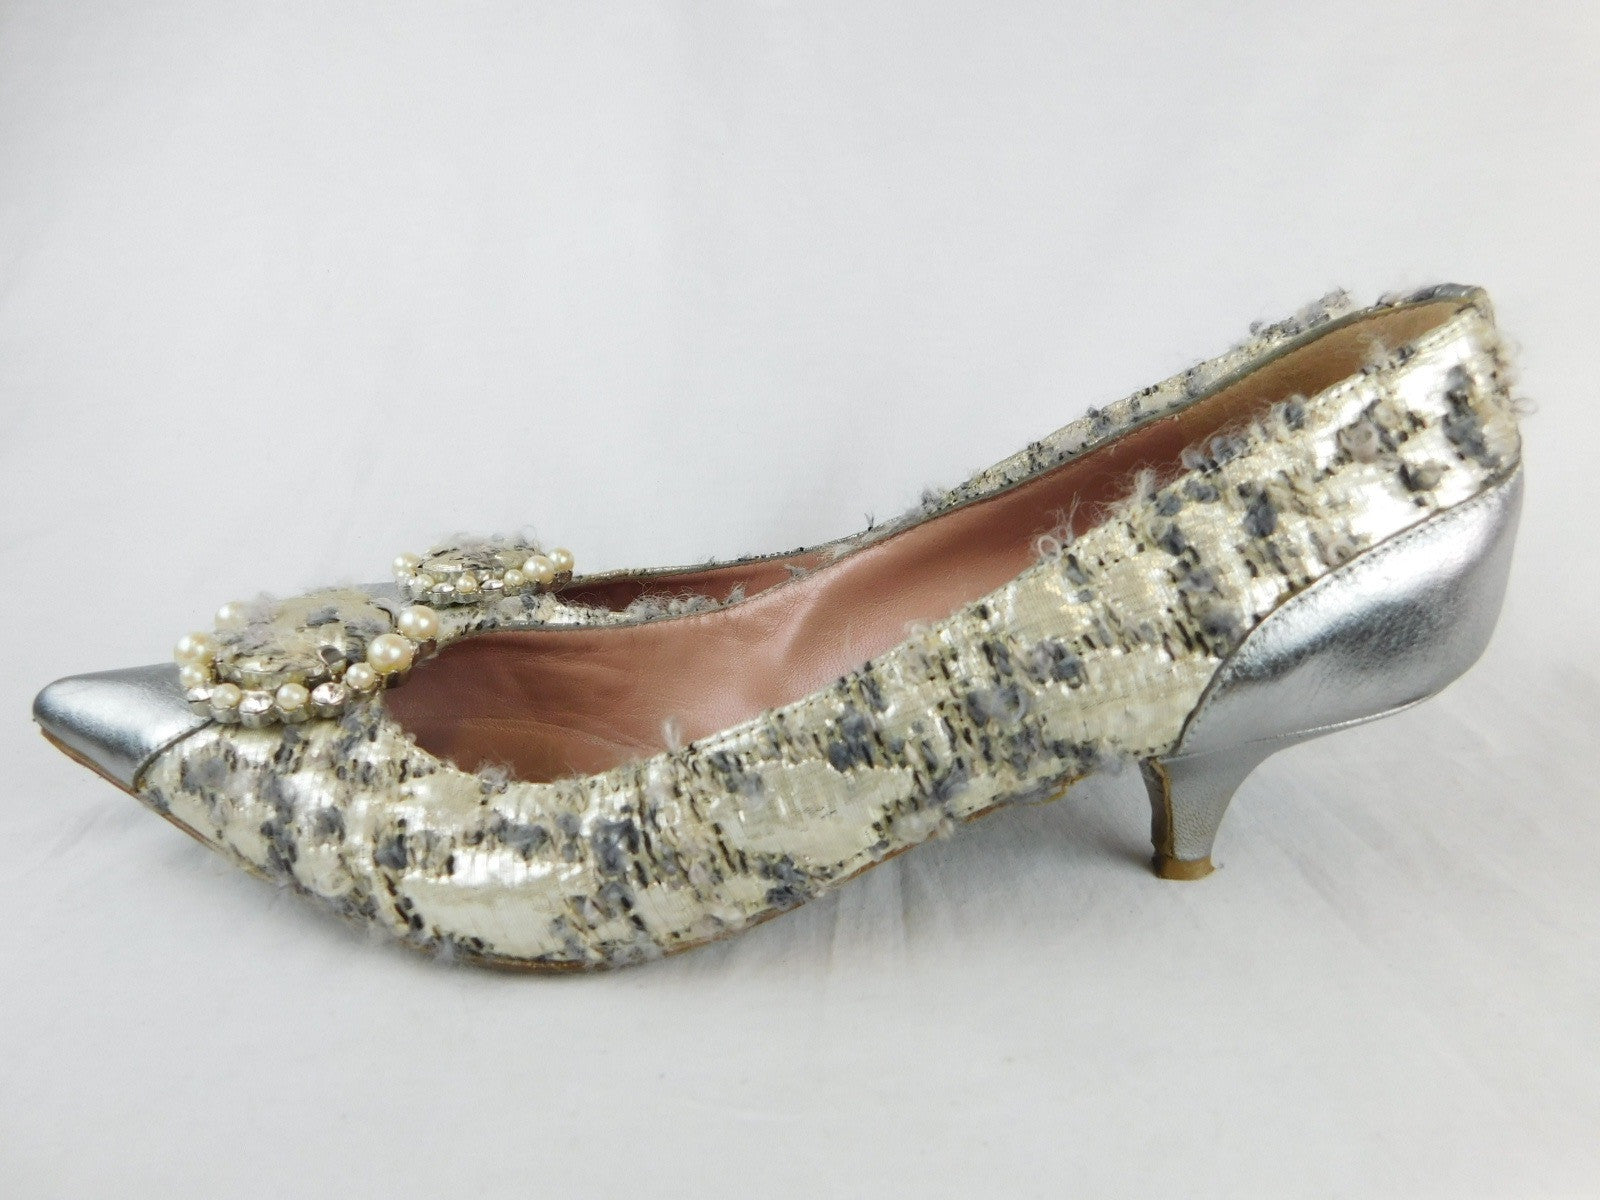 Moschino Vintage Boucle Metallic Silver Pearl Kitten Heels, Size 39/US 8.5